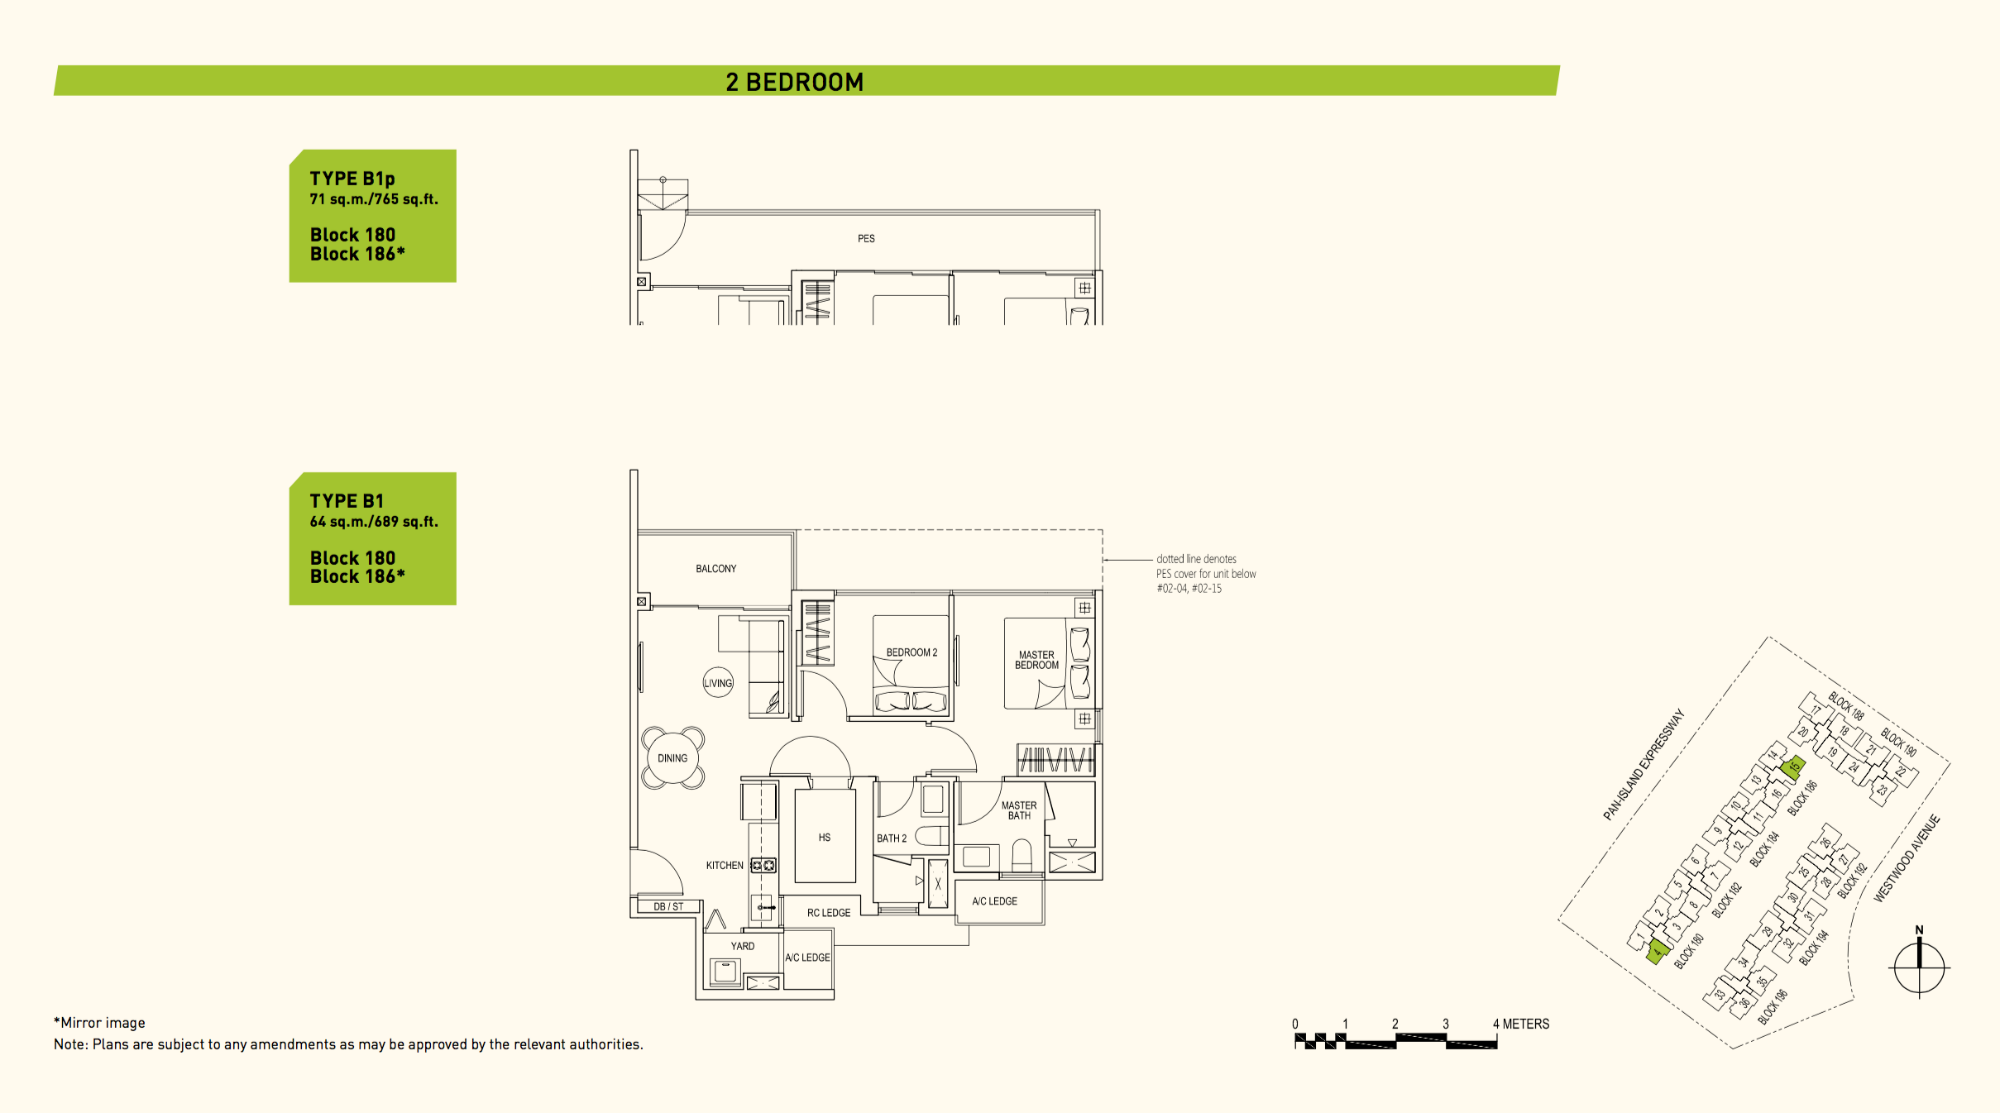 Westwood Residences EC Floor Plan 2 Bedroom B1 64 sqm 689 sqft